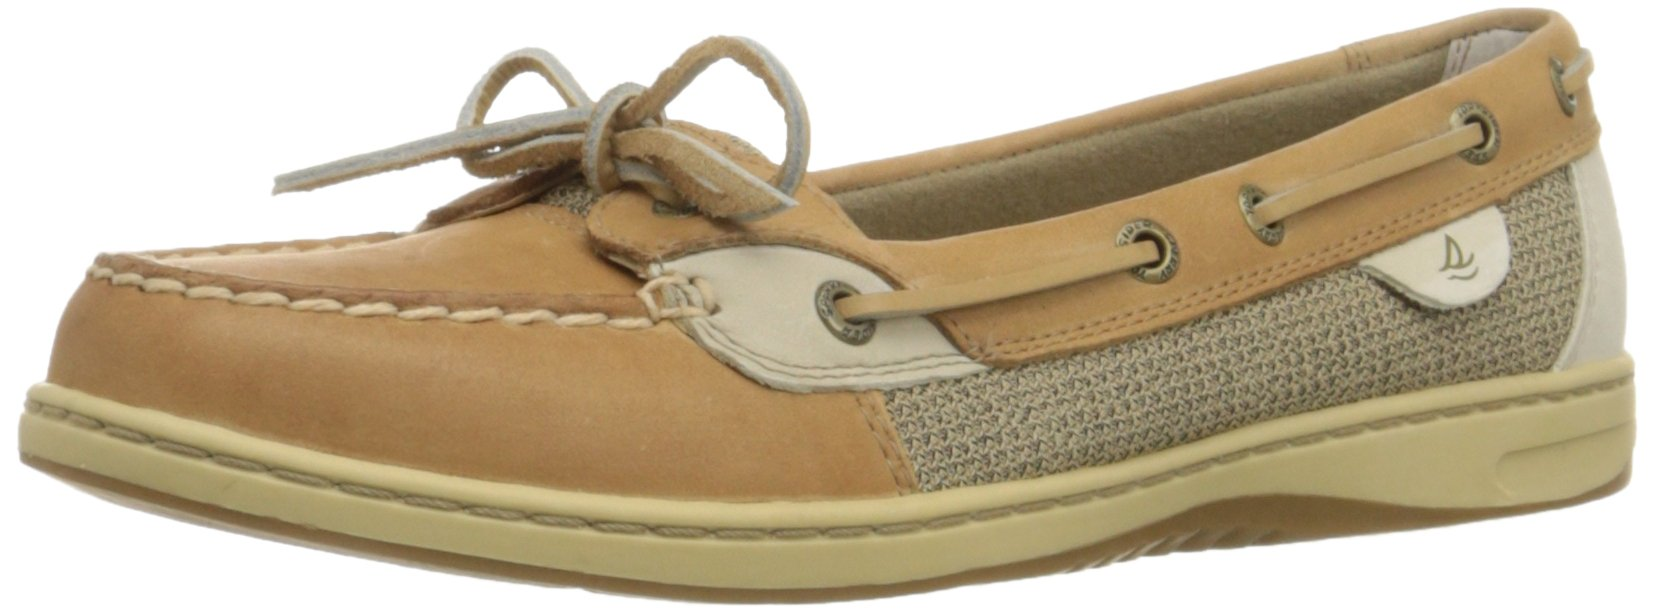 Sperry Top-Sider Women's Angelfish,Linen/Oat,9 M US by SPERRY